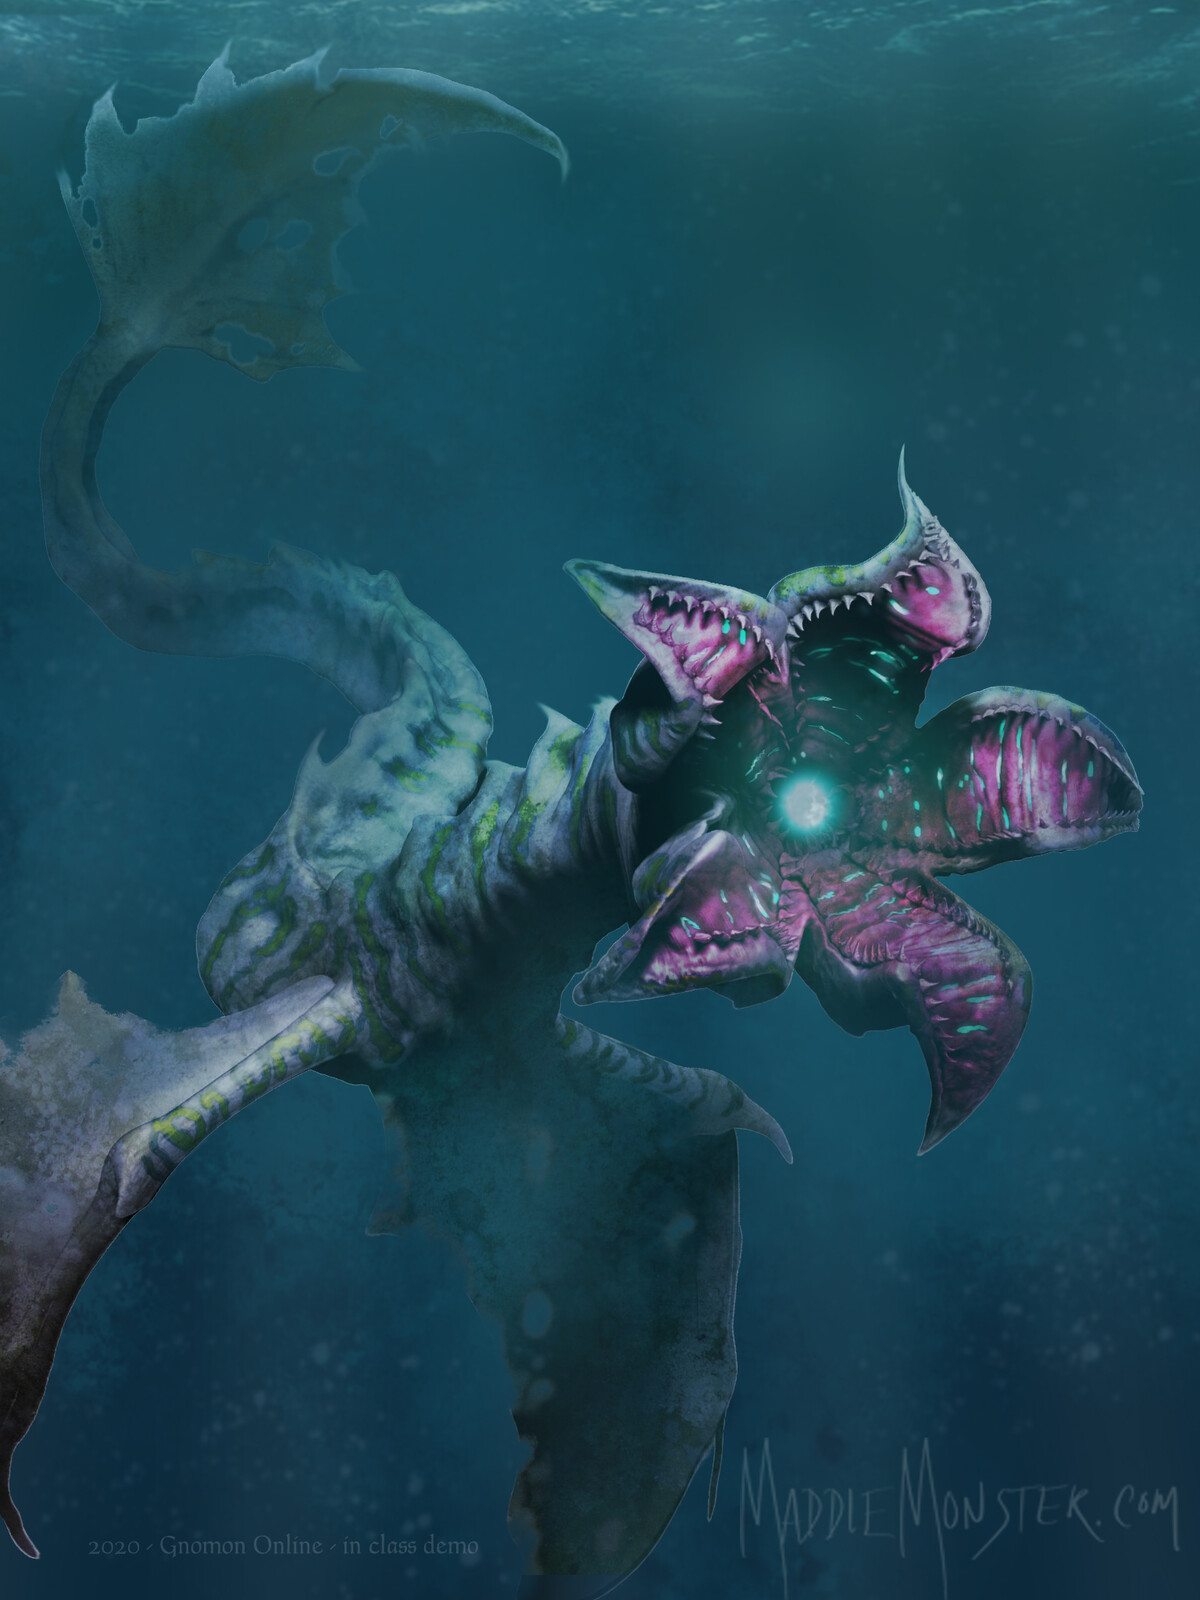 Starfish Devourer - The Lamp Mouth Leviathan